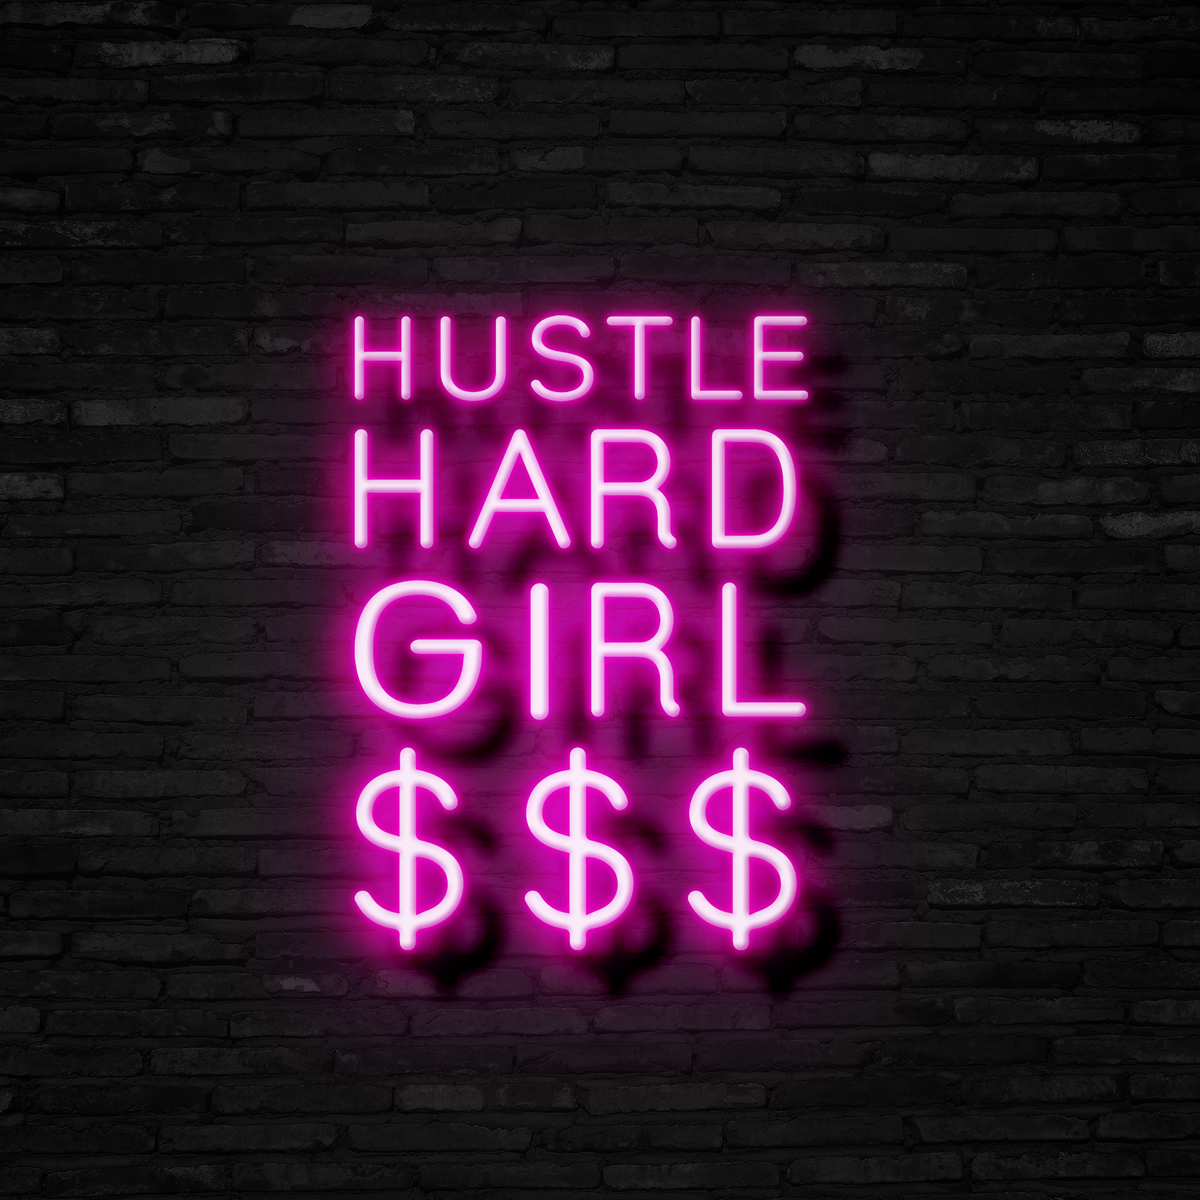 Hustle Hard Girl $$$ - Neon Sign